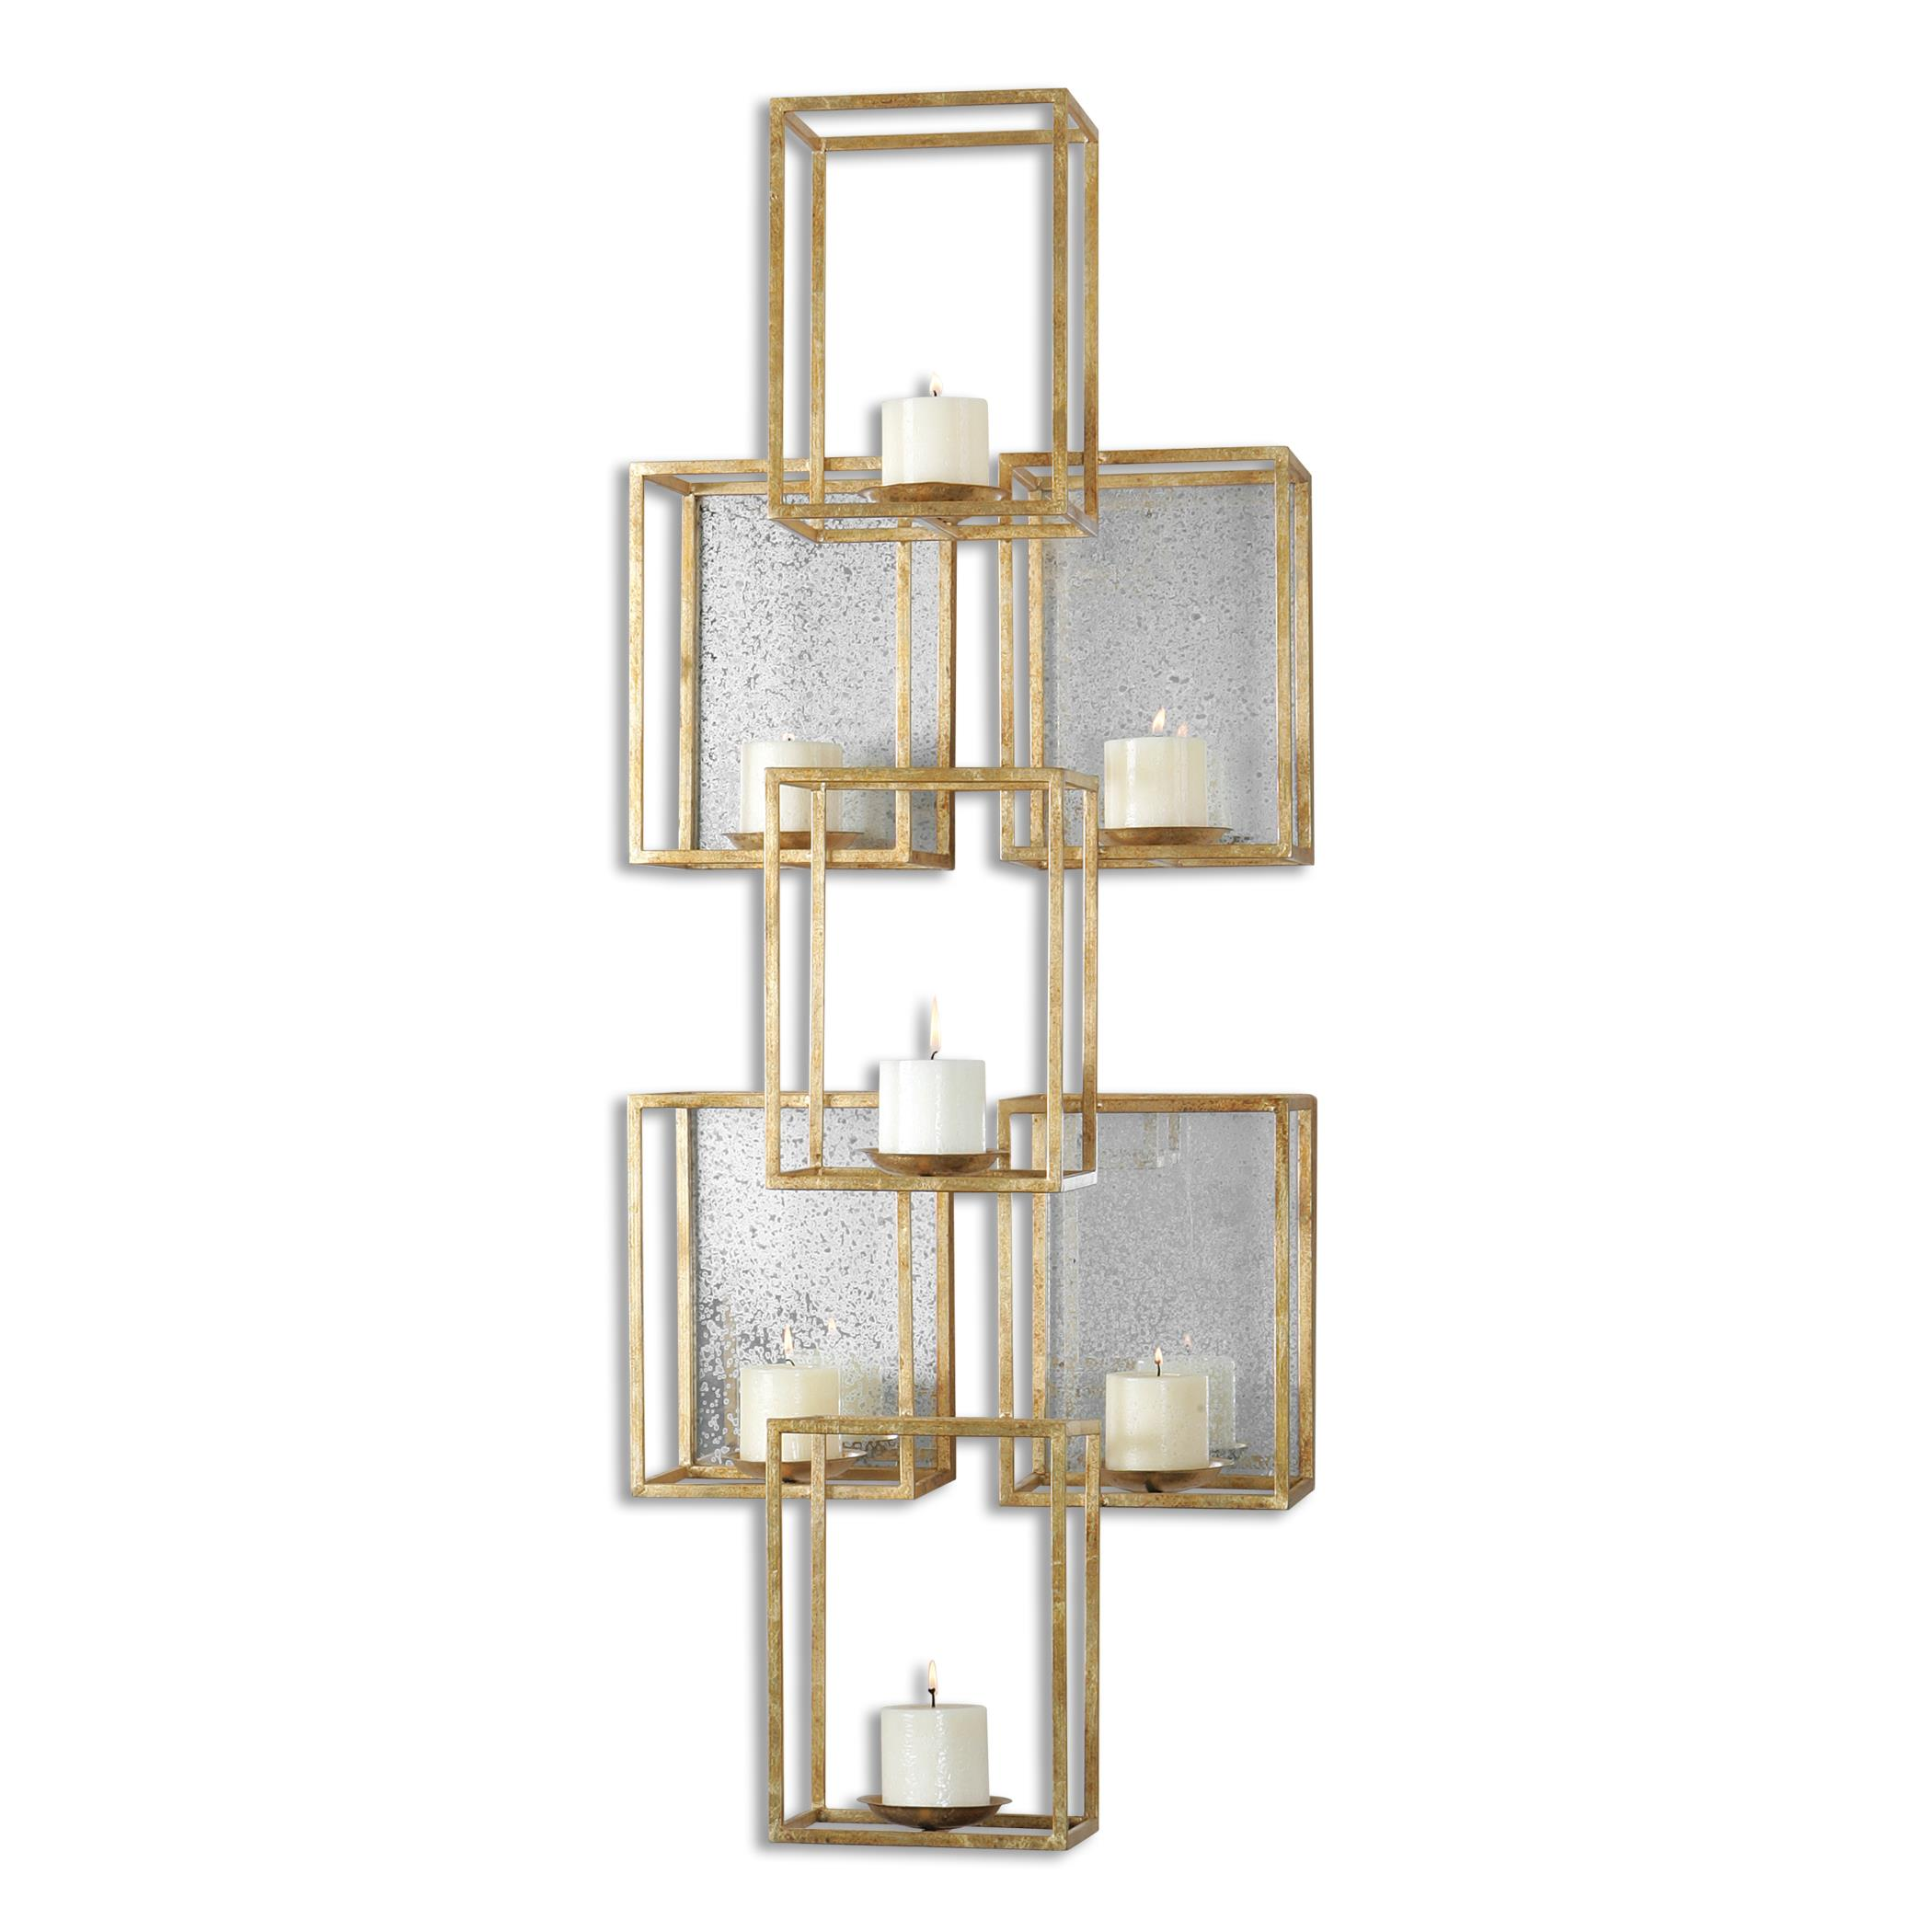 Uttermost Alternative Wall Decor Ronana Mirrored Wall Sconce - Item Number: 07693